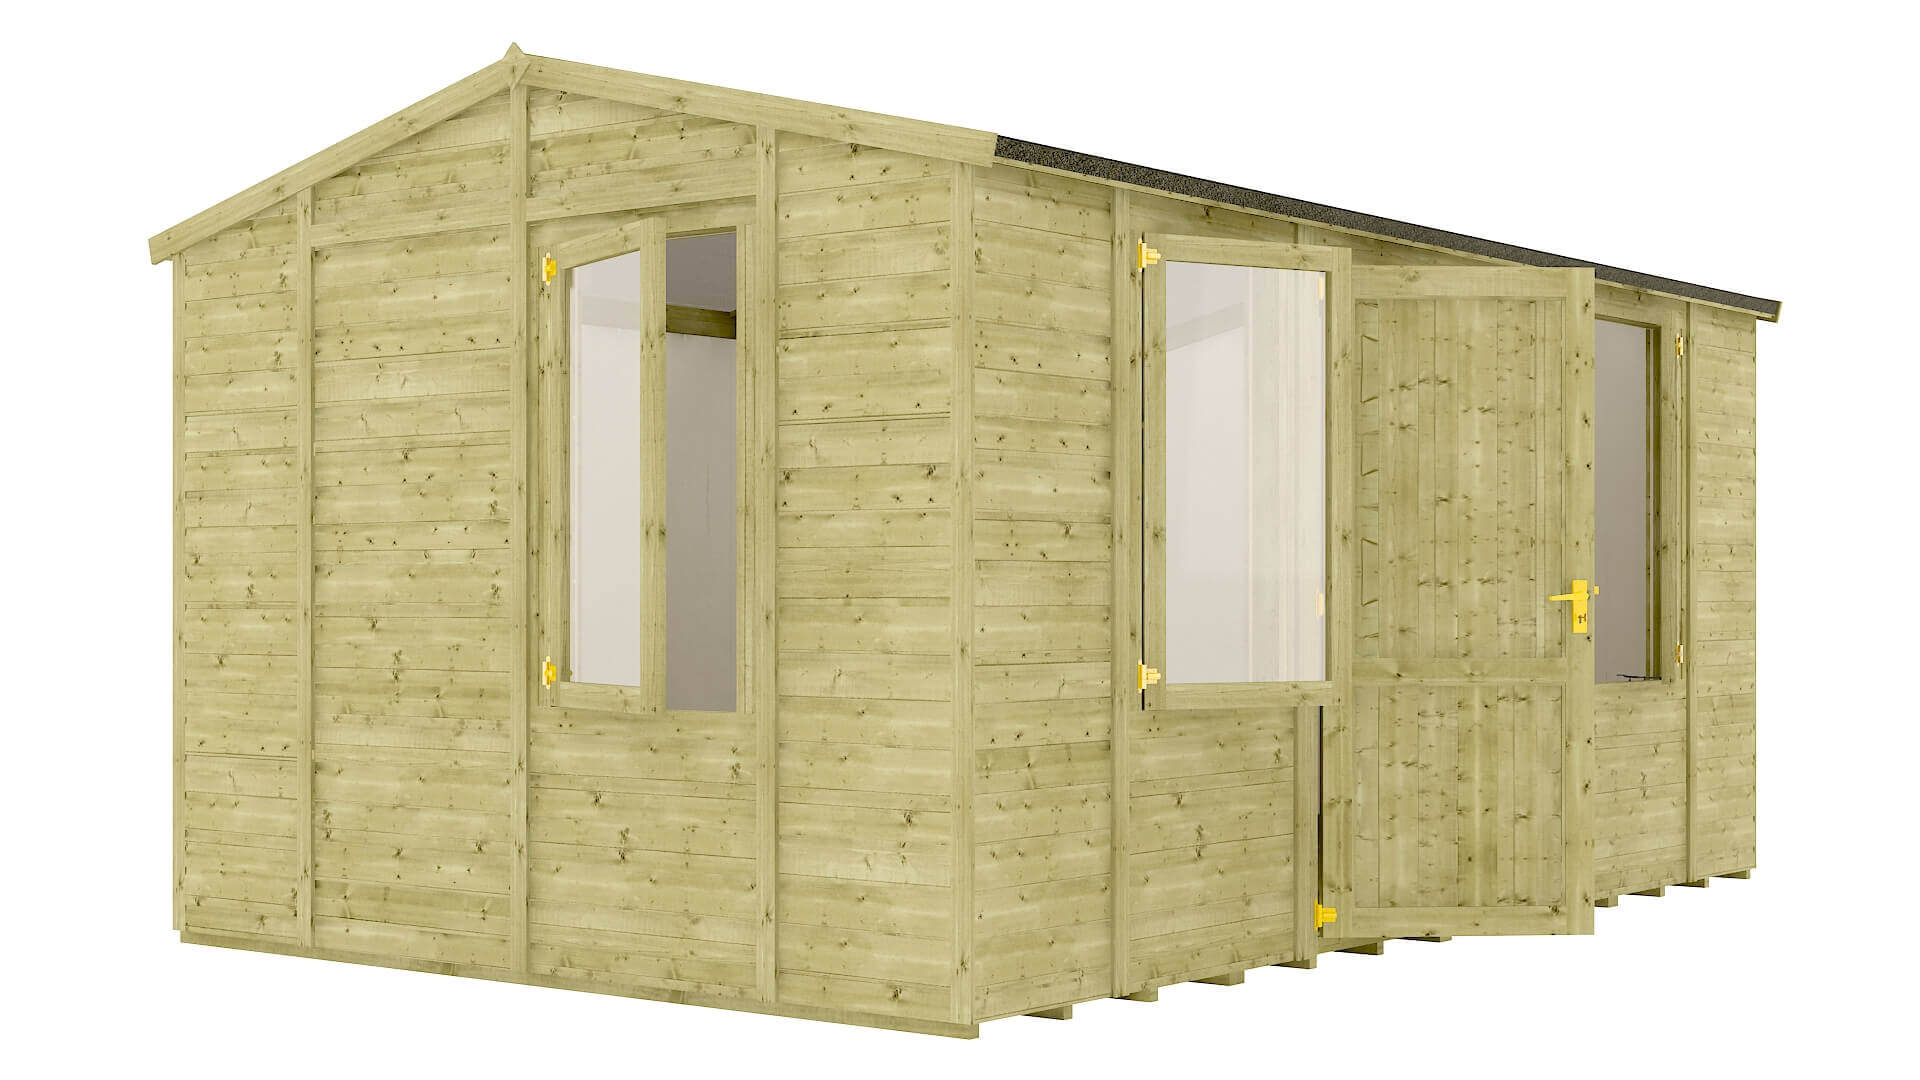 Pressure Treated Traditional Windowed Grandmaster Insulated Workshop Shed